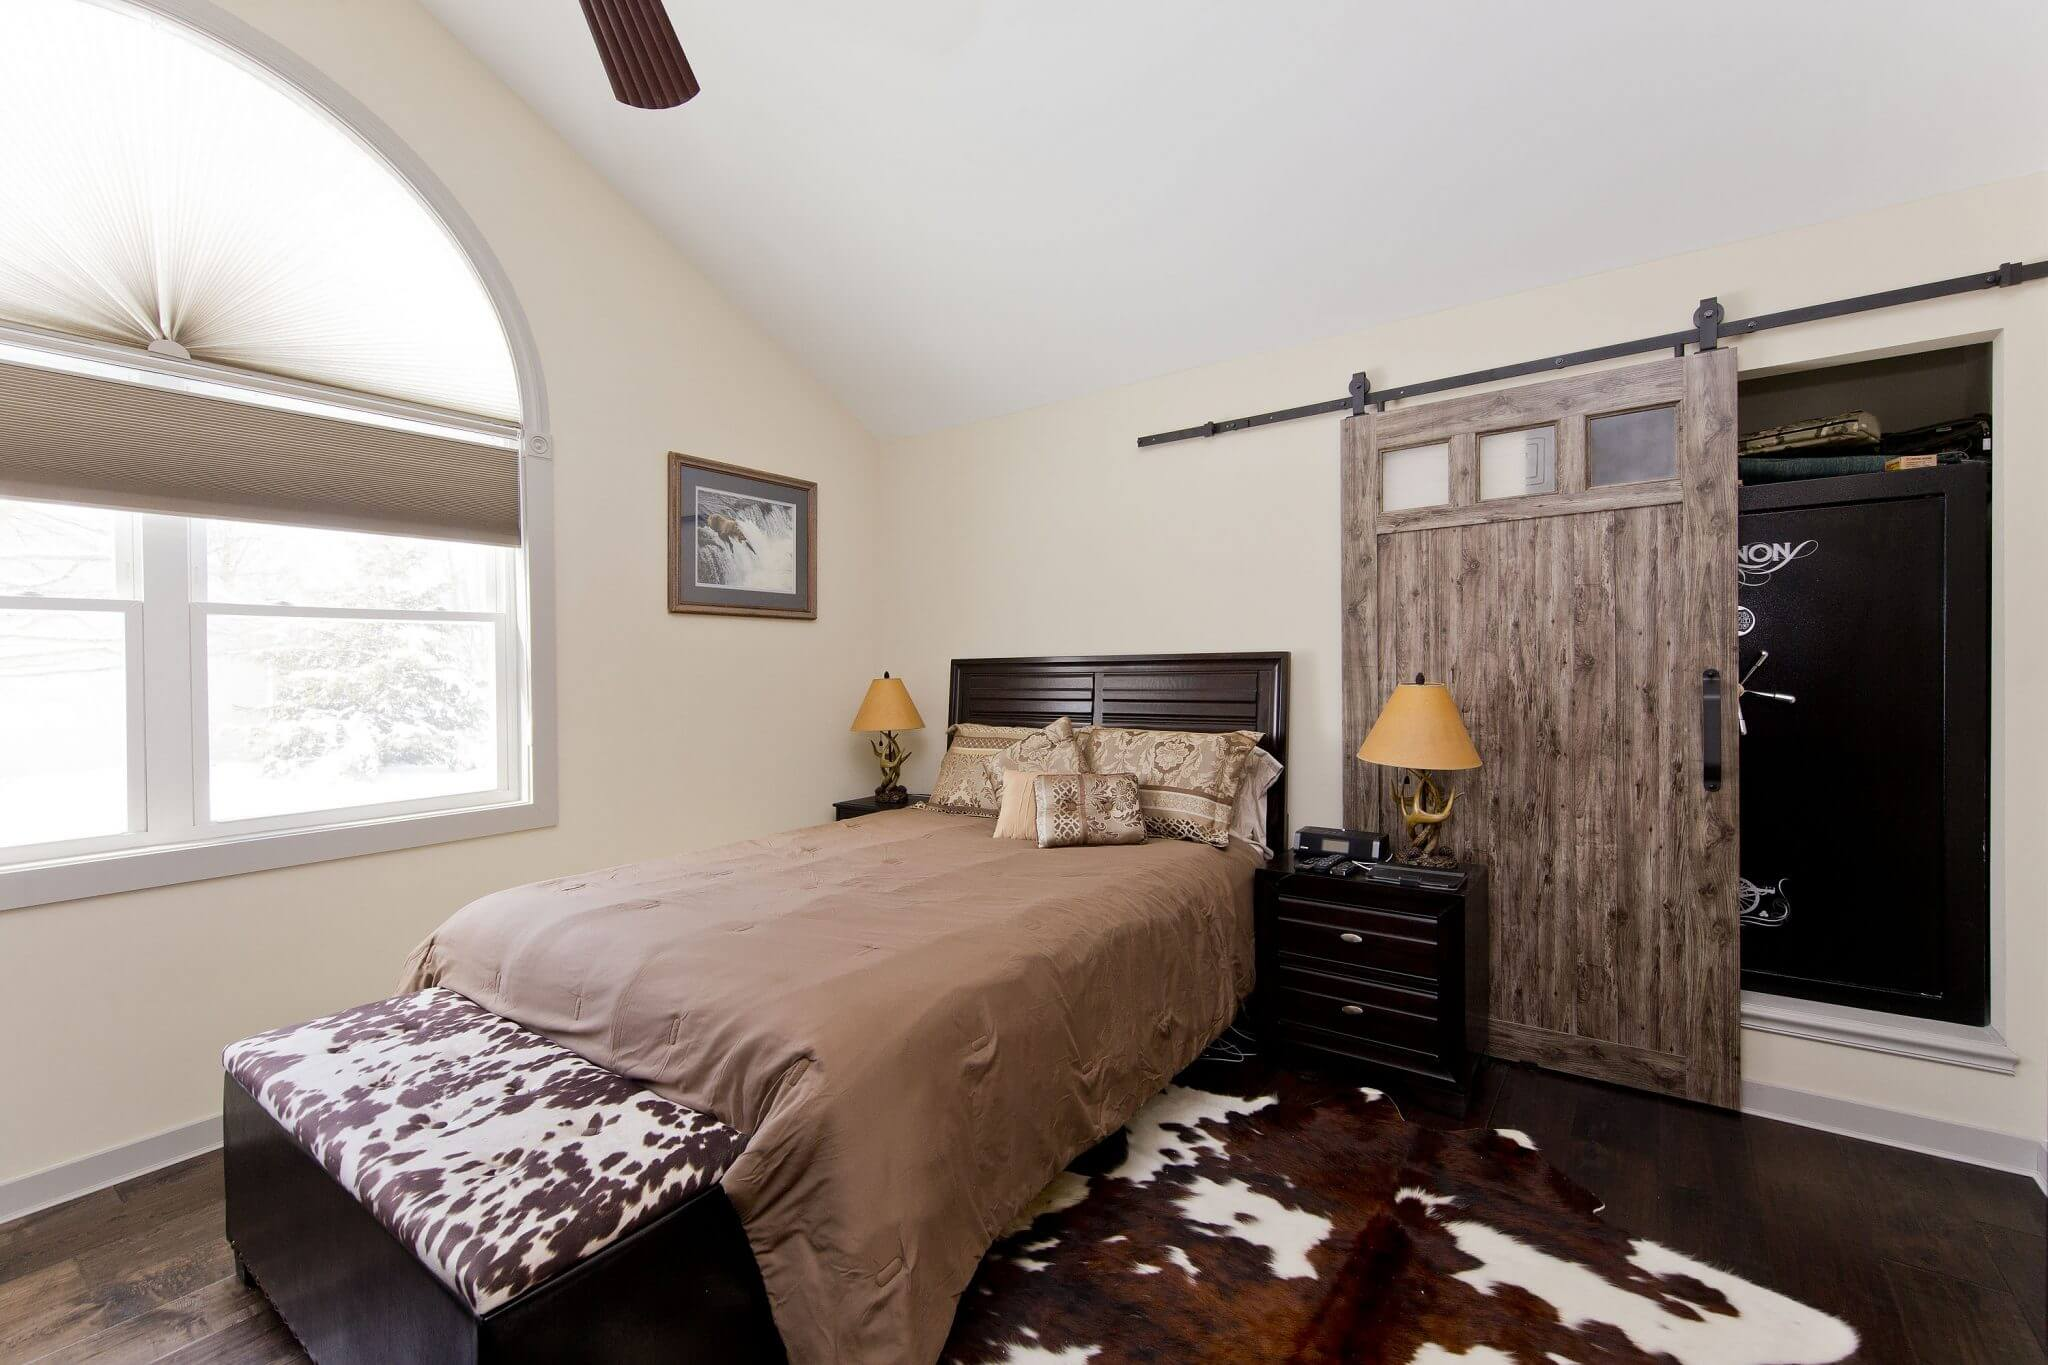 Professional Designer Home Renovation bedroom and safe